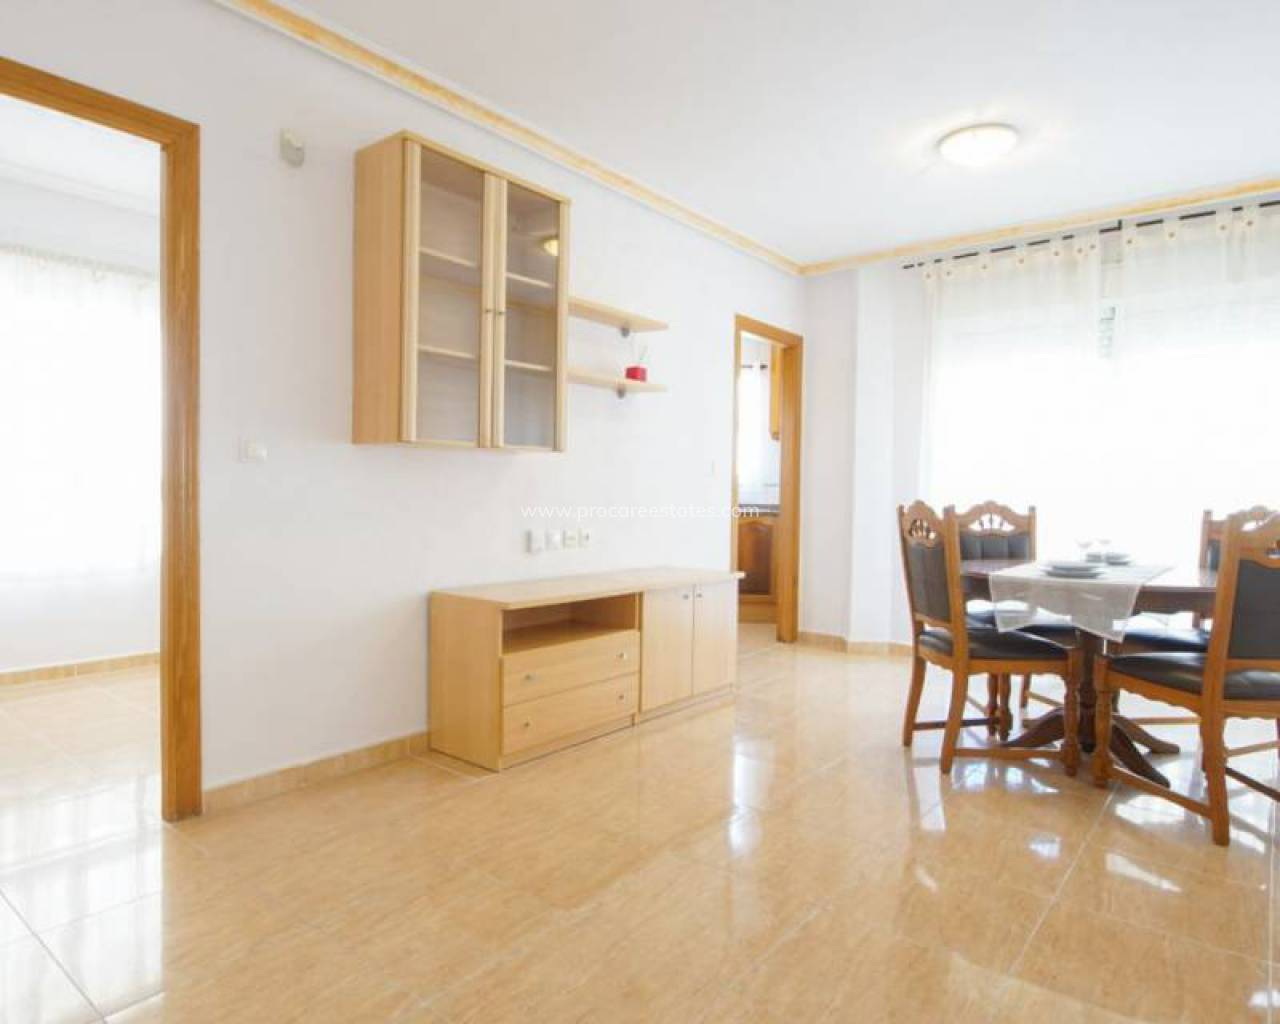 Appartement - Verkoop - Torrevieja - Acequion